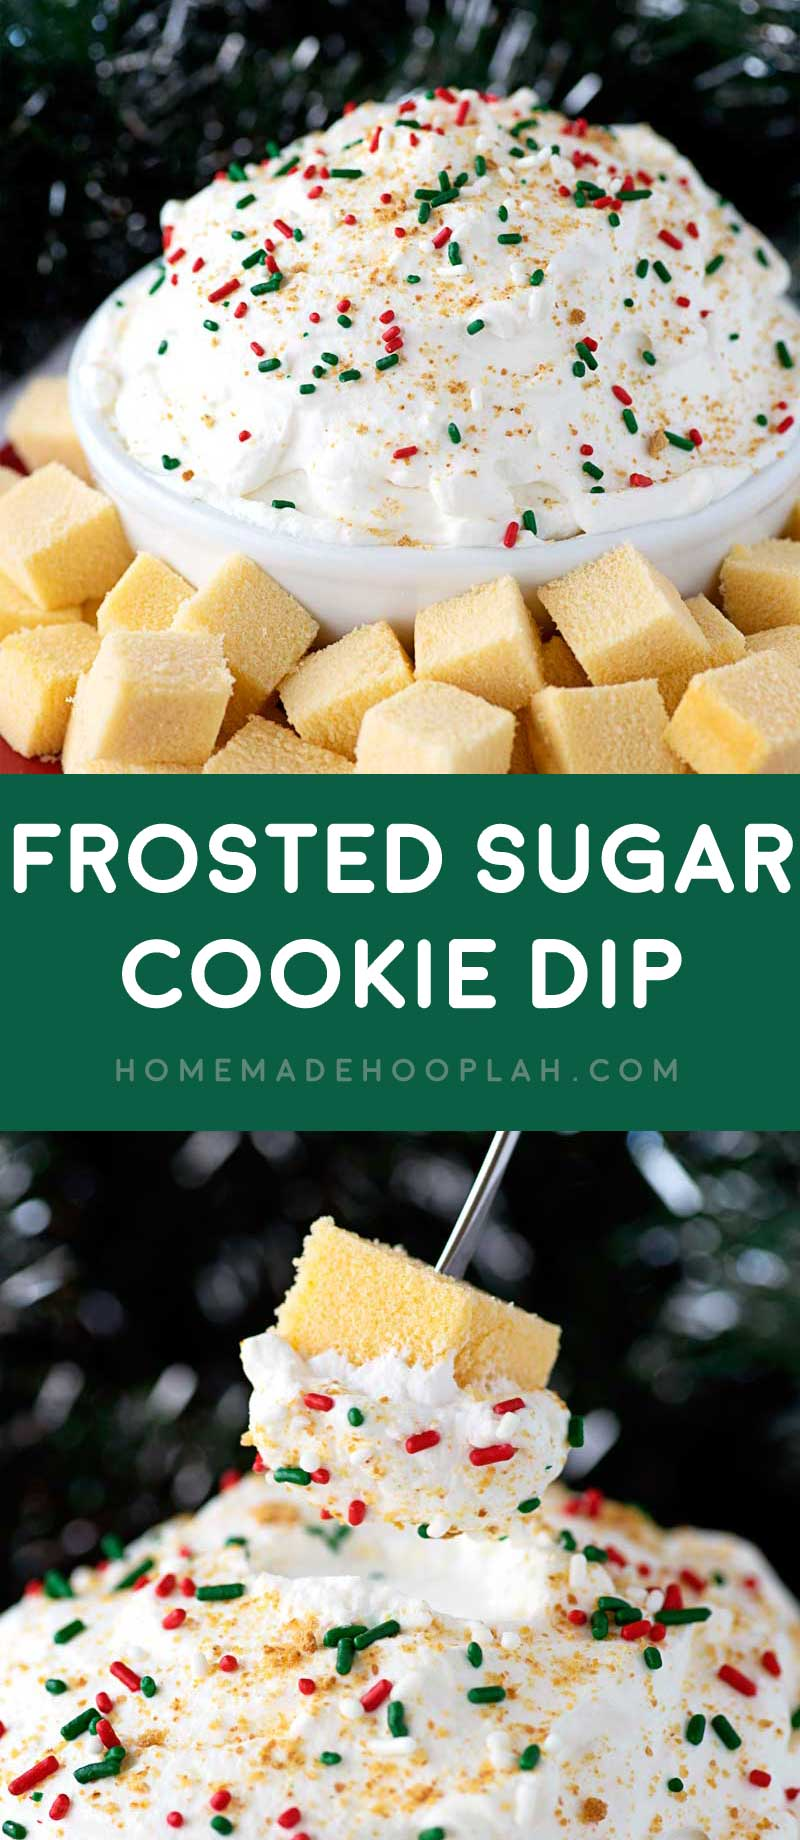 Frosted Sugar Cookie Dip! A fluffy dip made with International Delight Frosted Sugar Cookie Creamer and served fondue style with cubes of spongy pound cake. #ad #HolidayDelight #IDelight   HomemadeHooplah.com